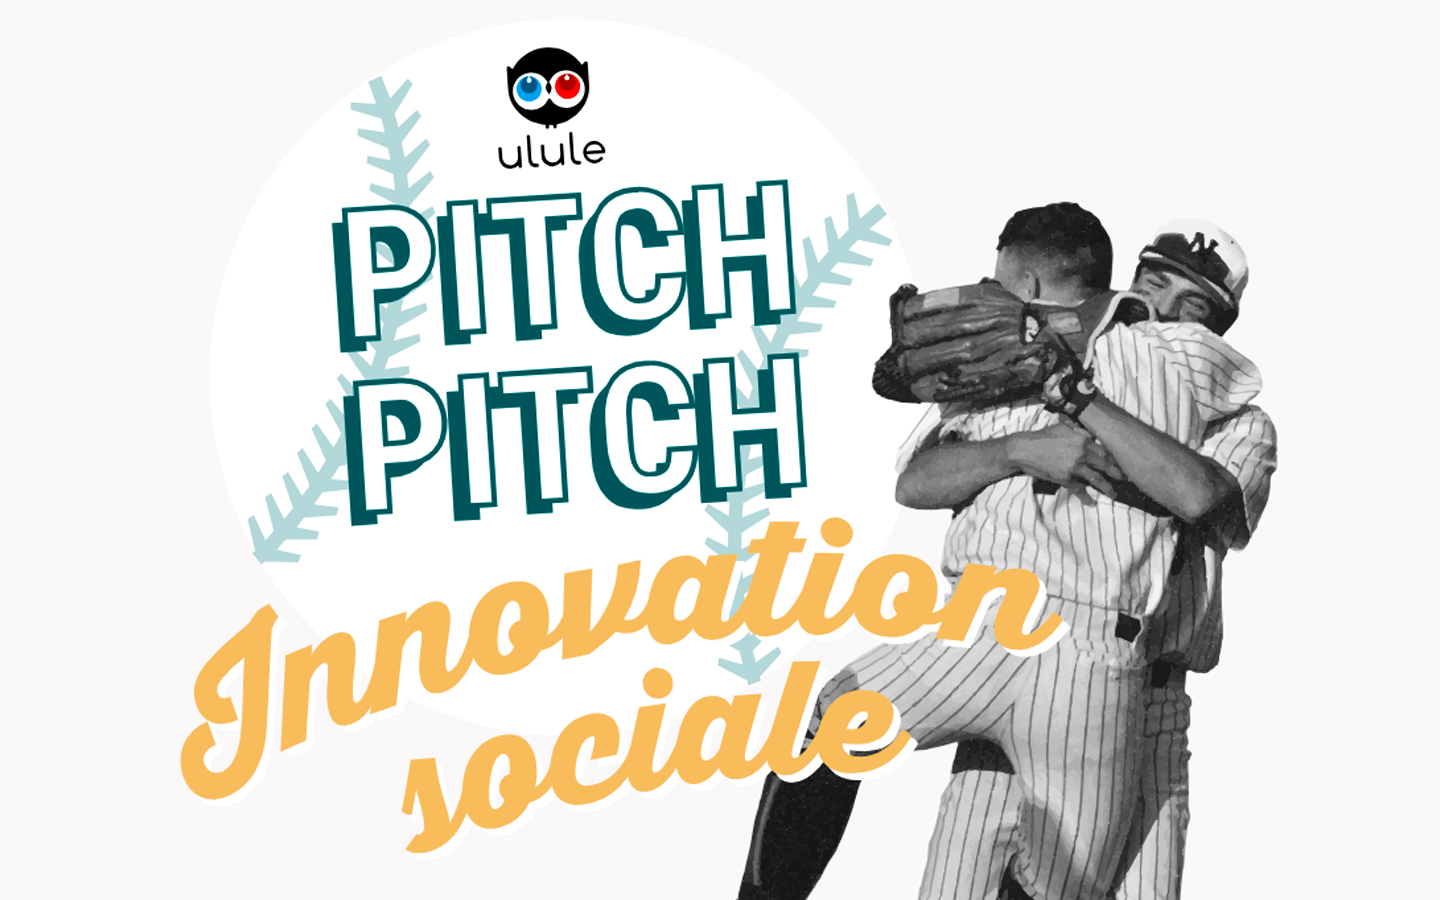 Ulule Pitch Pitch: Receive support for your social innovation project